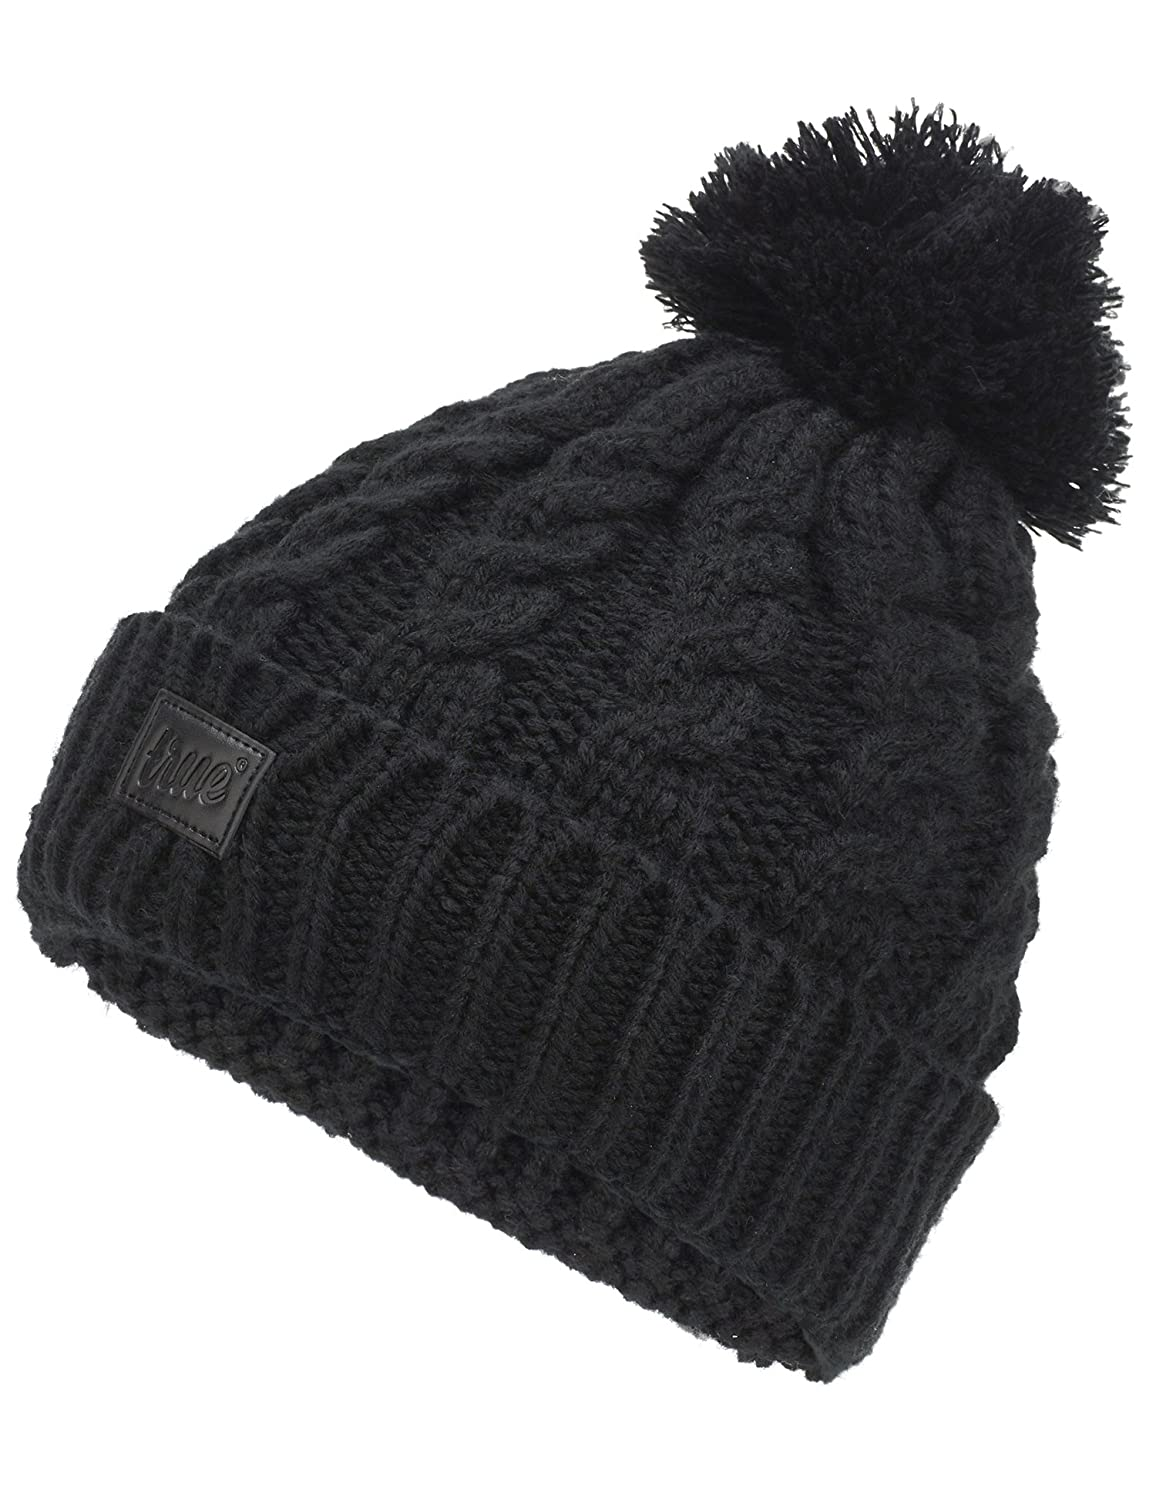 b8cbe243e2b TRUE VISION Womens Beanie Hat - Chunky Cable Knitted Bobble Hat 2 x  Detachable Pom Poms (Faux Fur   Wool) Warm Soft   Comfortable Acrylic One  Size Fit ...